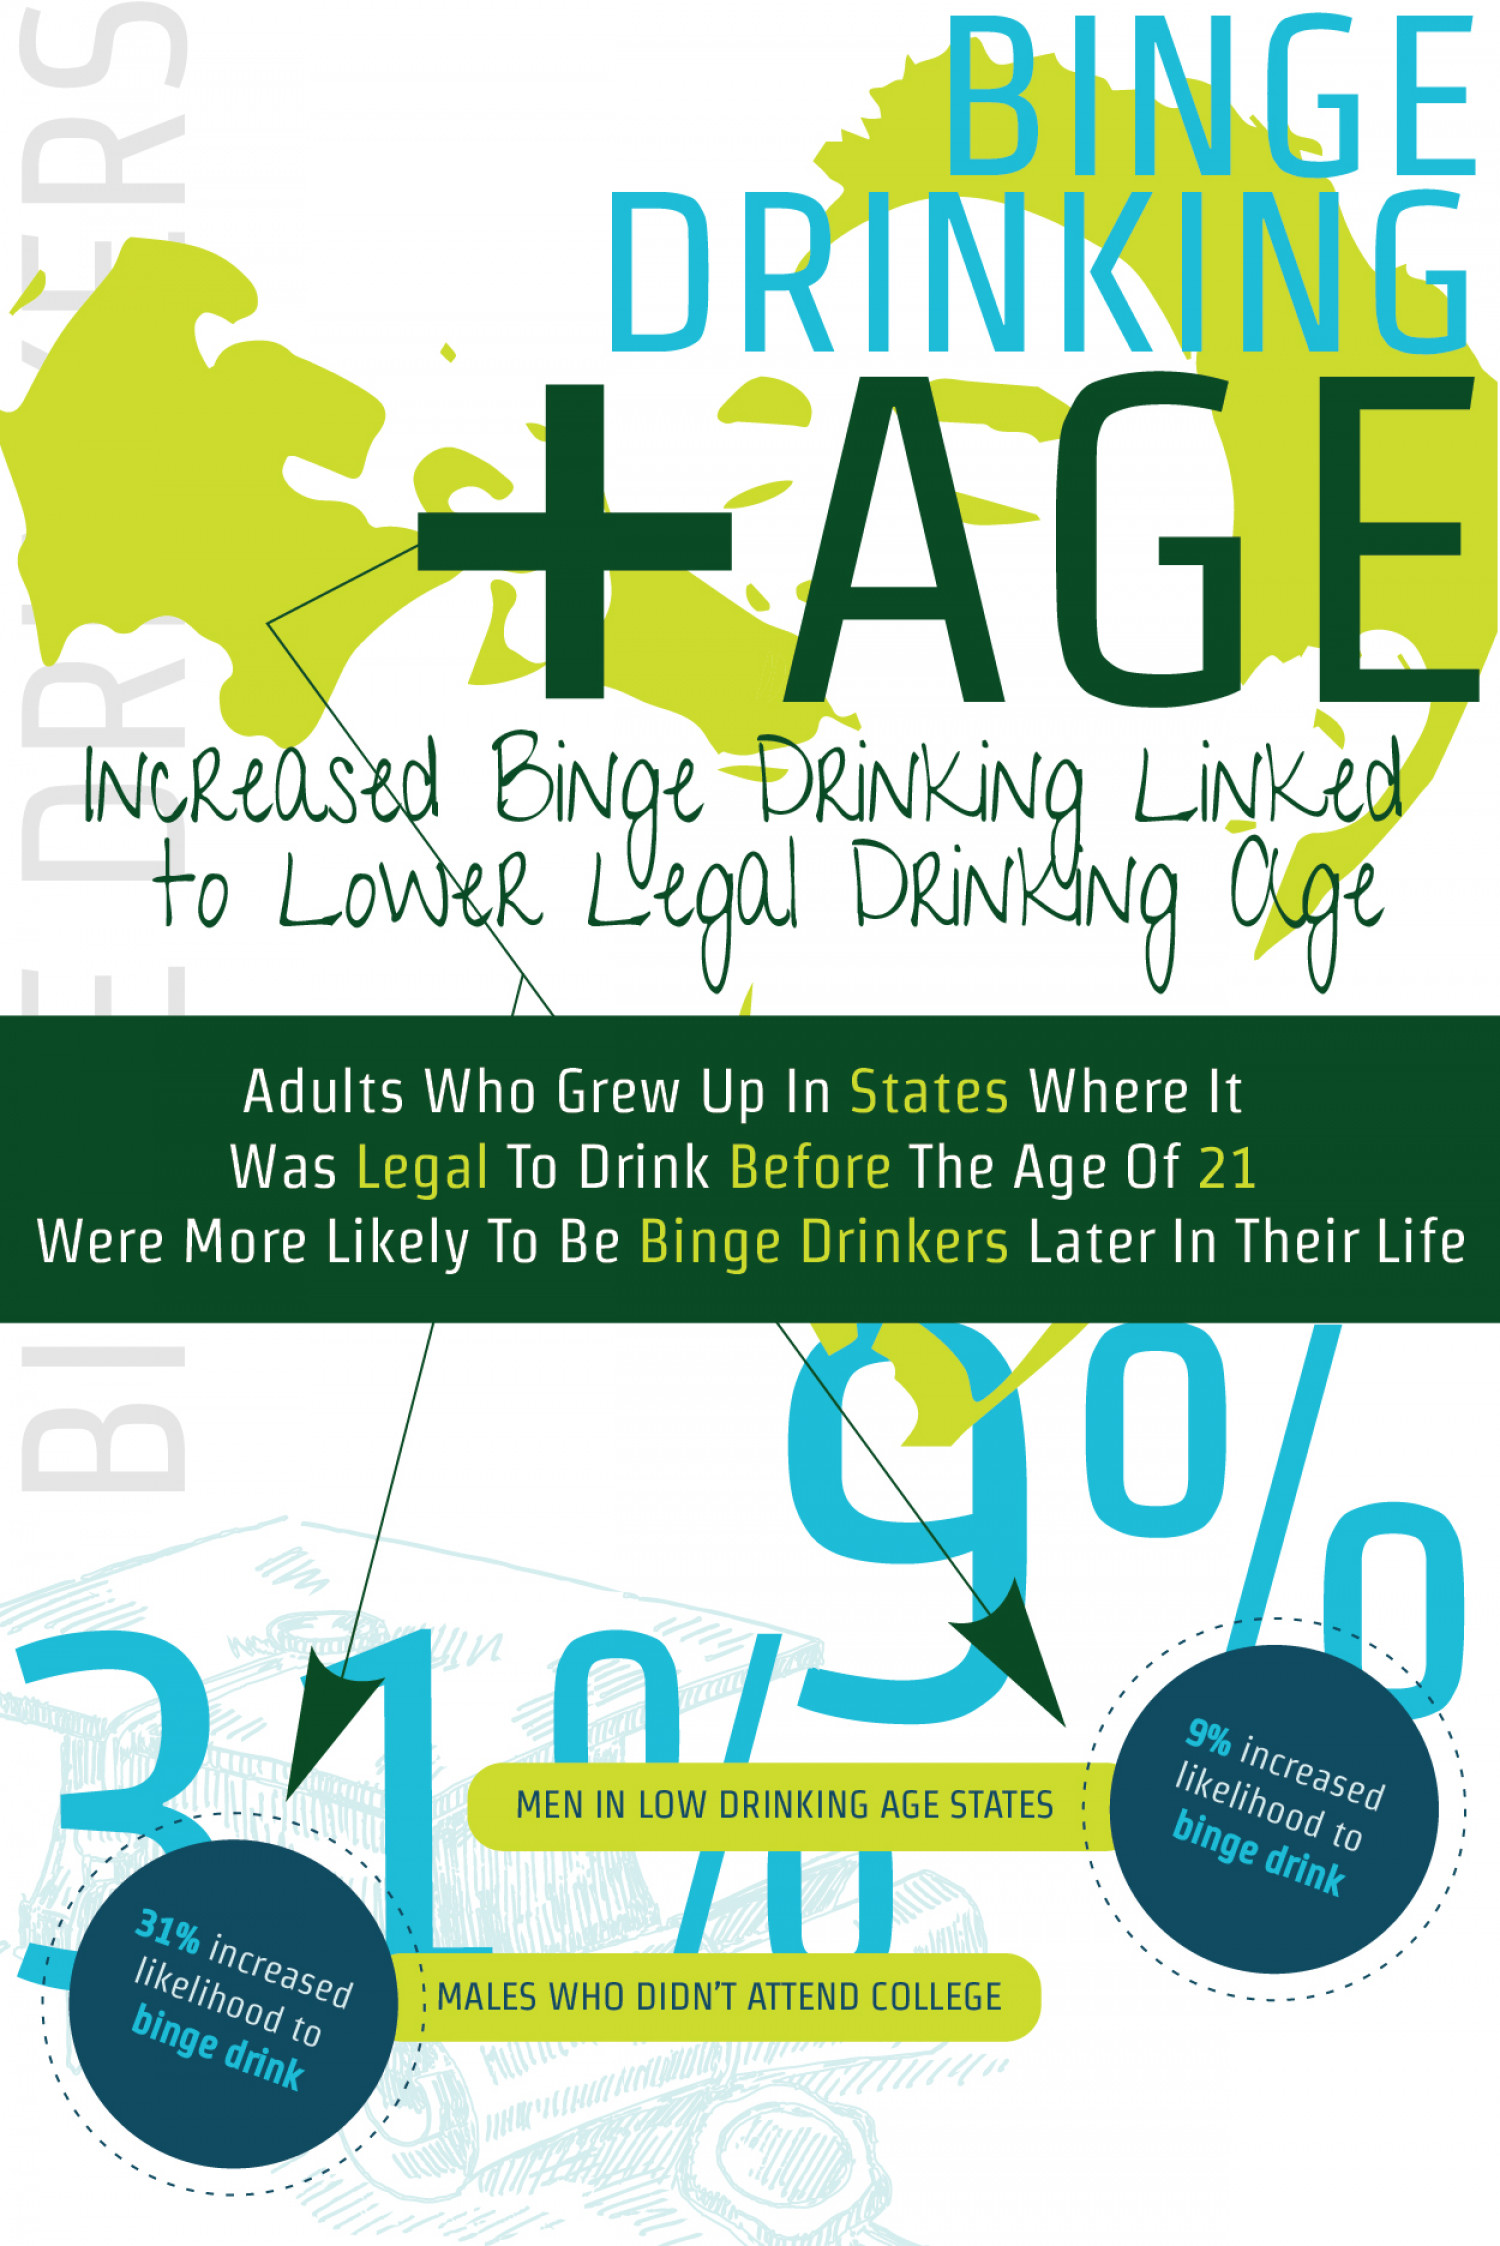 increased binge drinking linked to lower legal drinking age study  increased binge drinking linked to lower legal drinking age study finds infographic